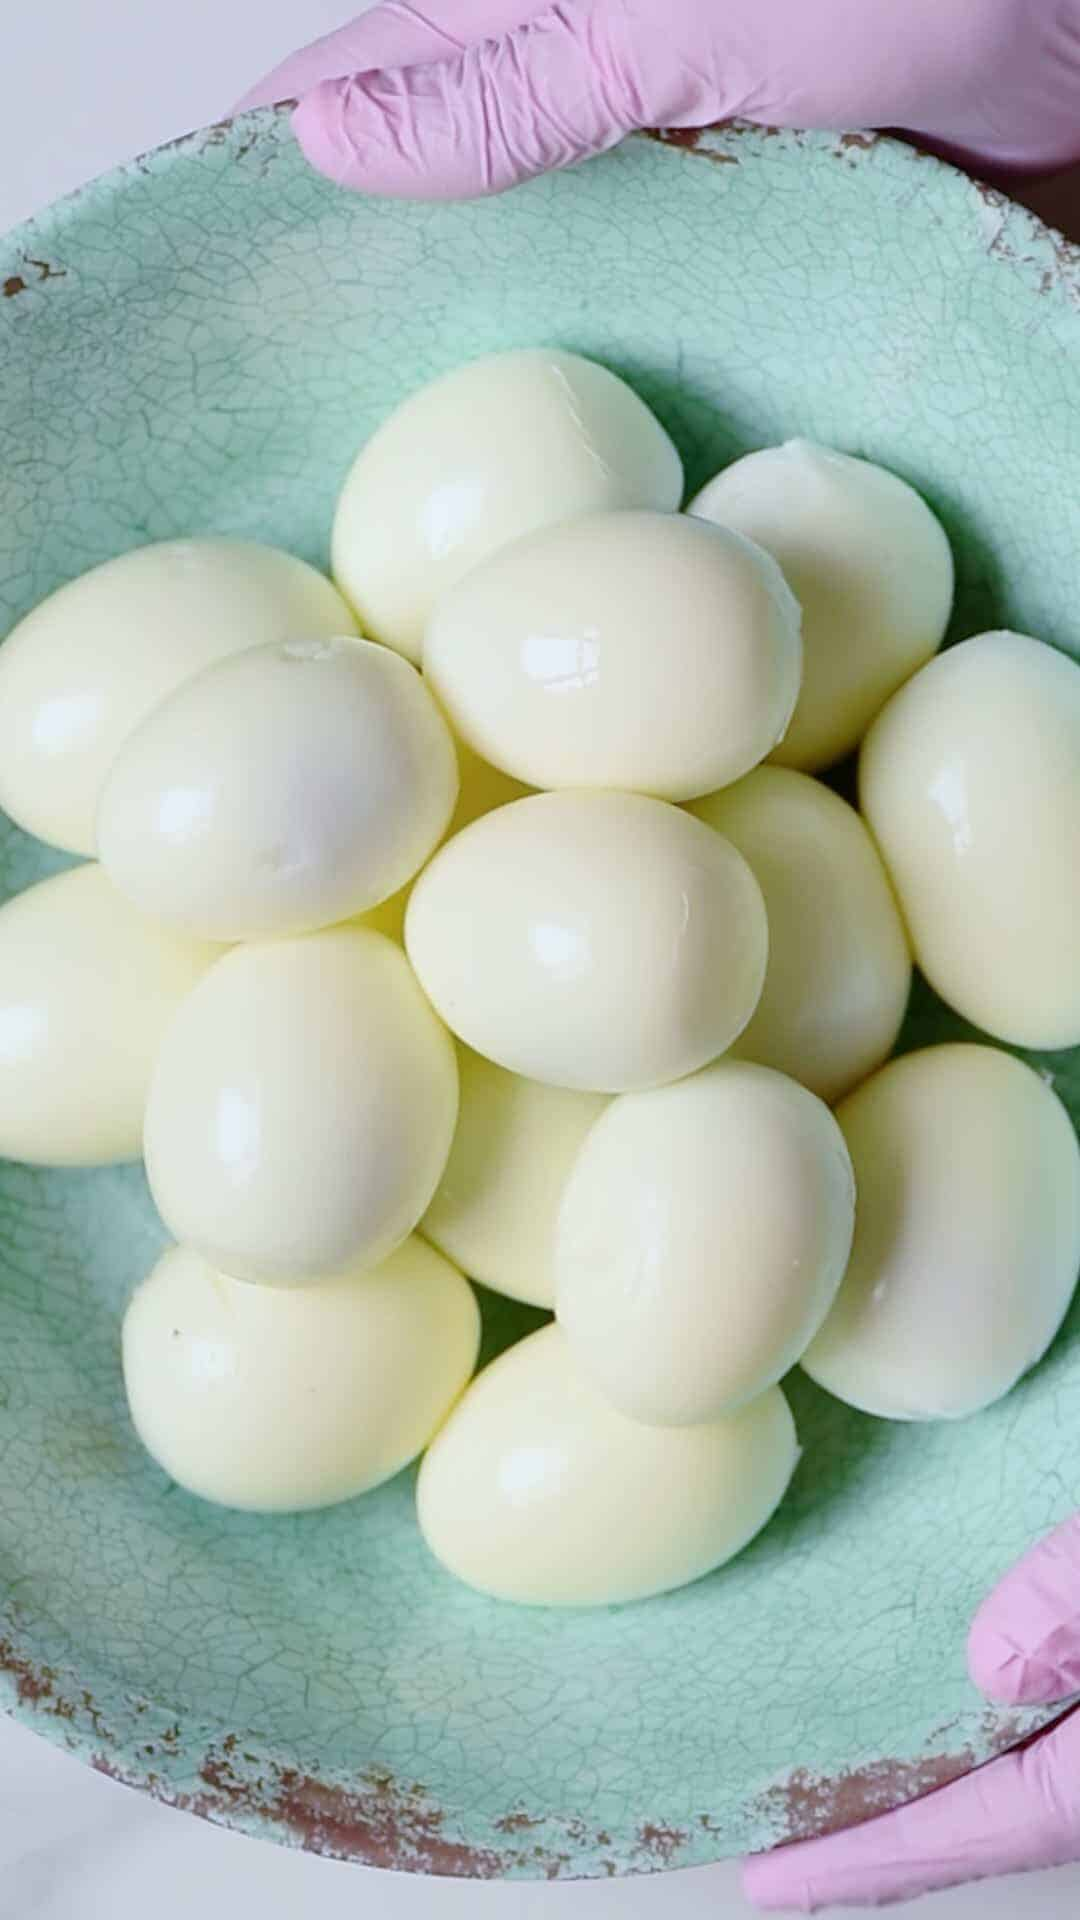 16 peeled boiled eggs in a bowl